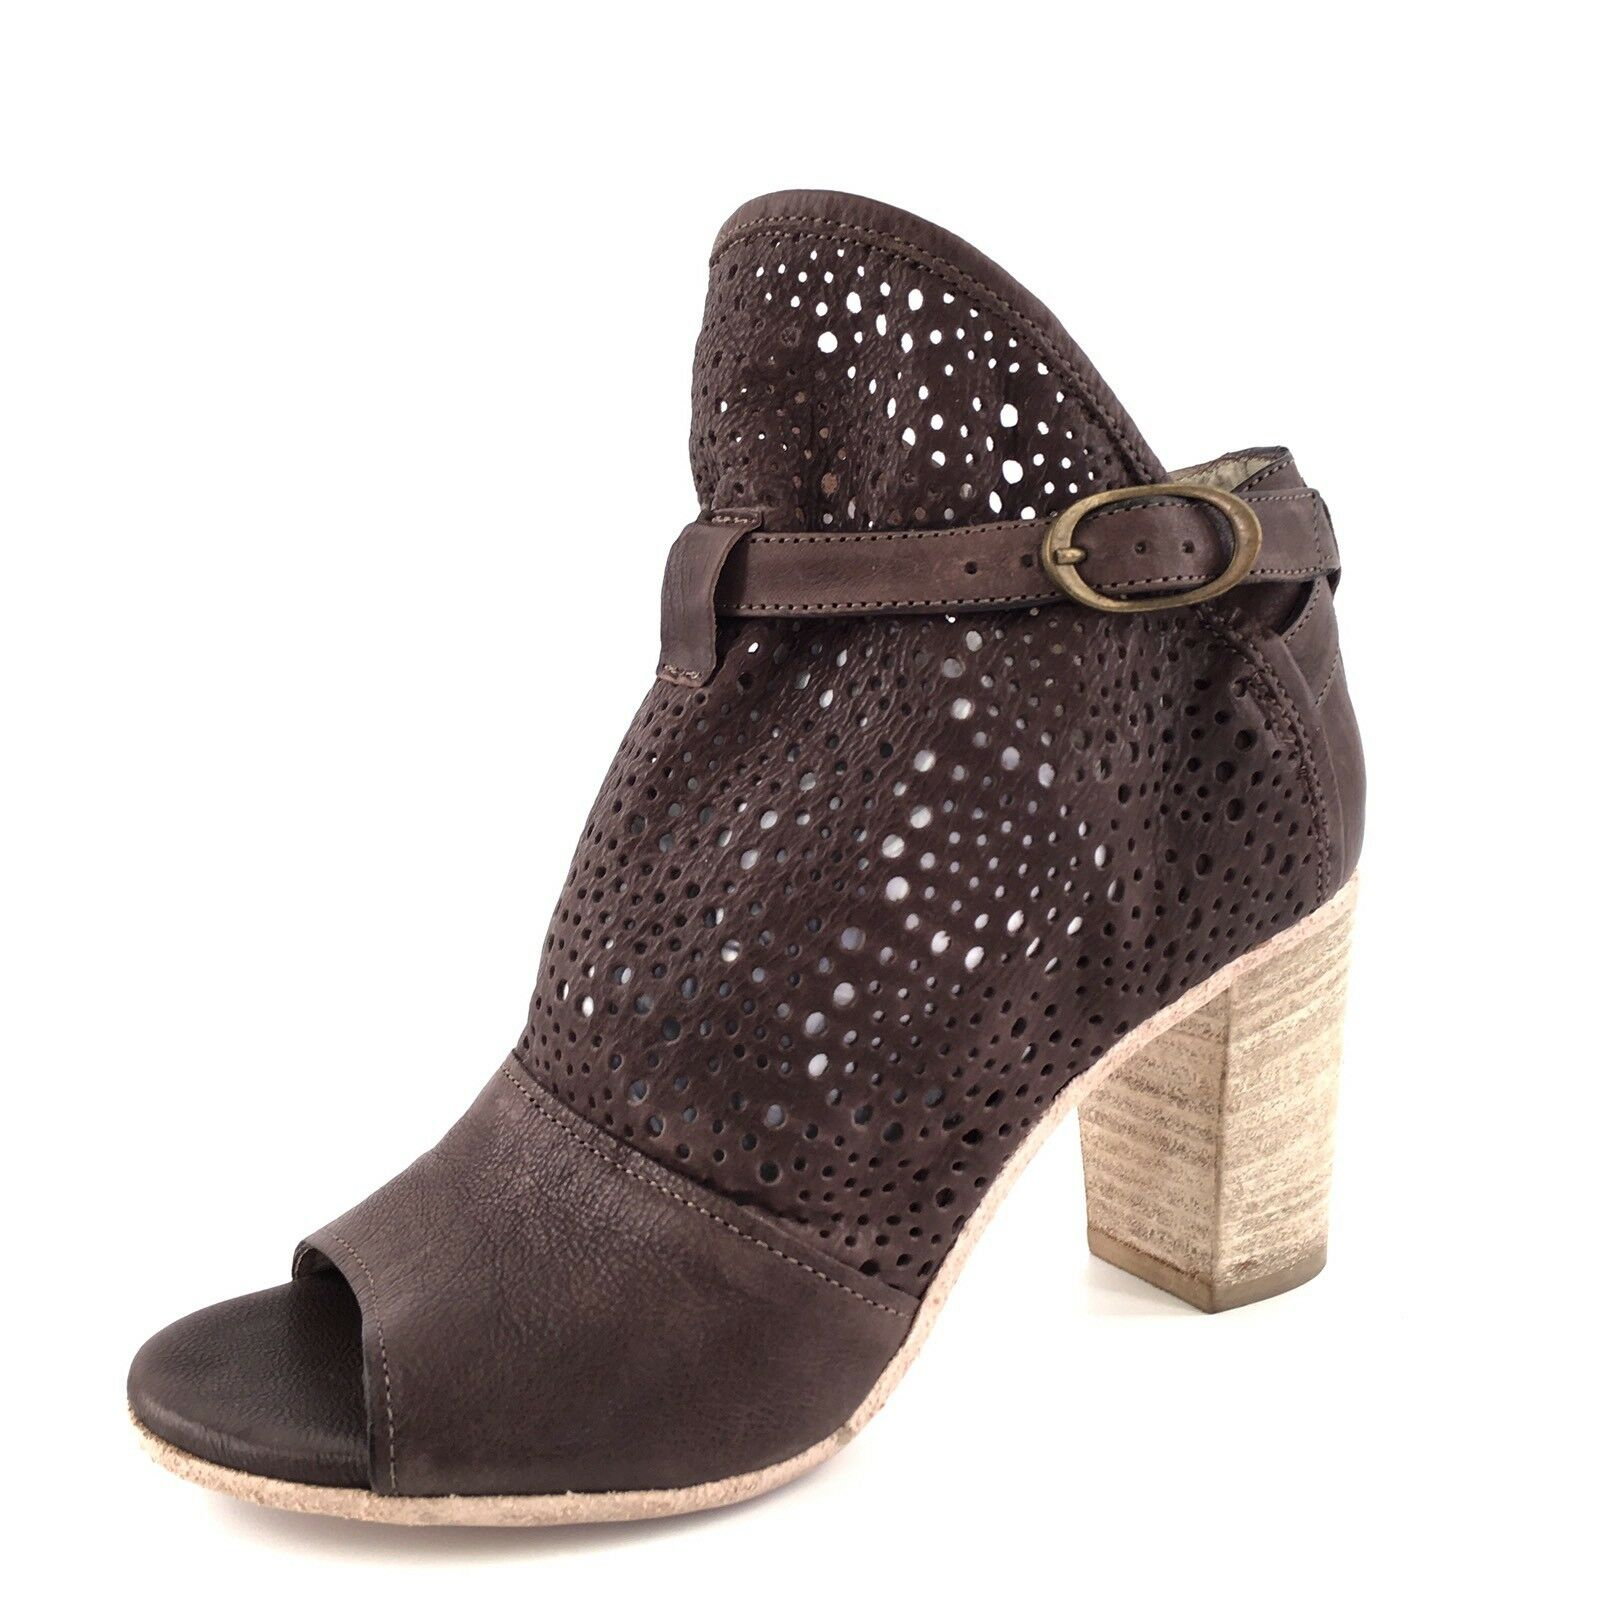 Latitude Femme Brown Leather Open Toe Ankle Boots Women's Size 37 M